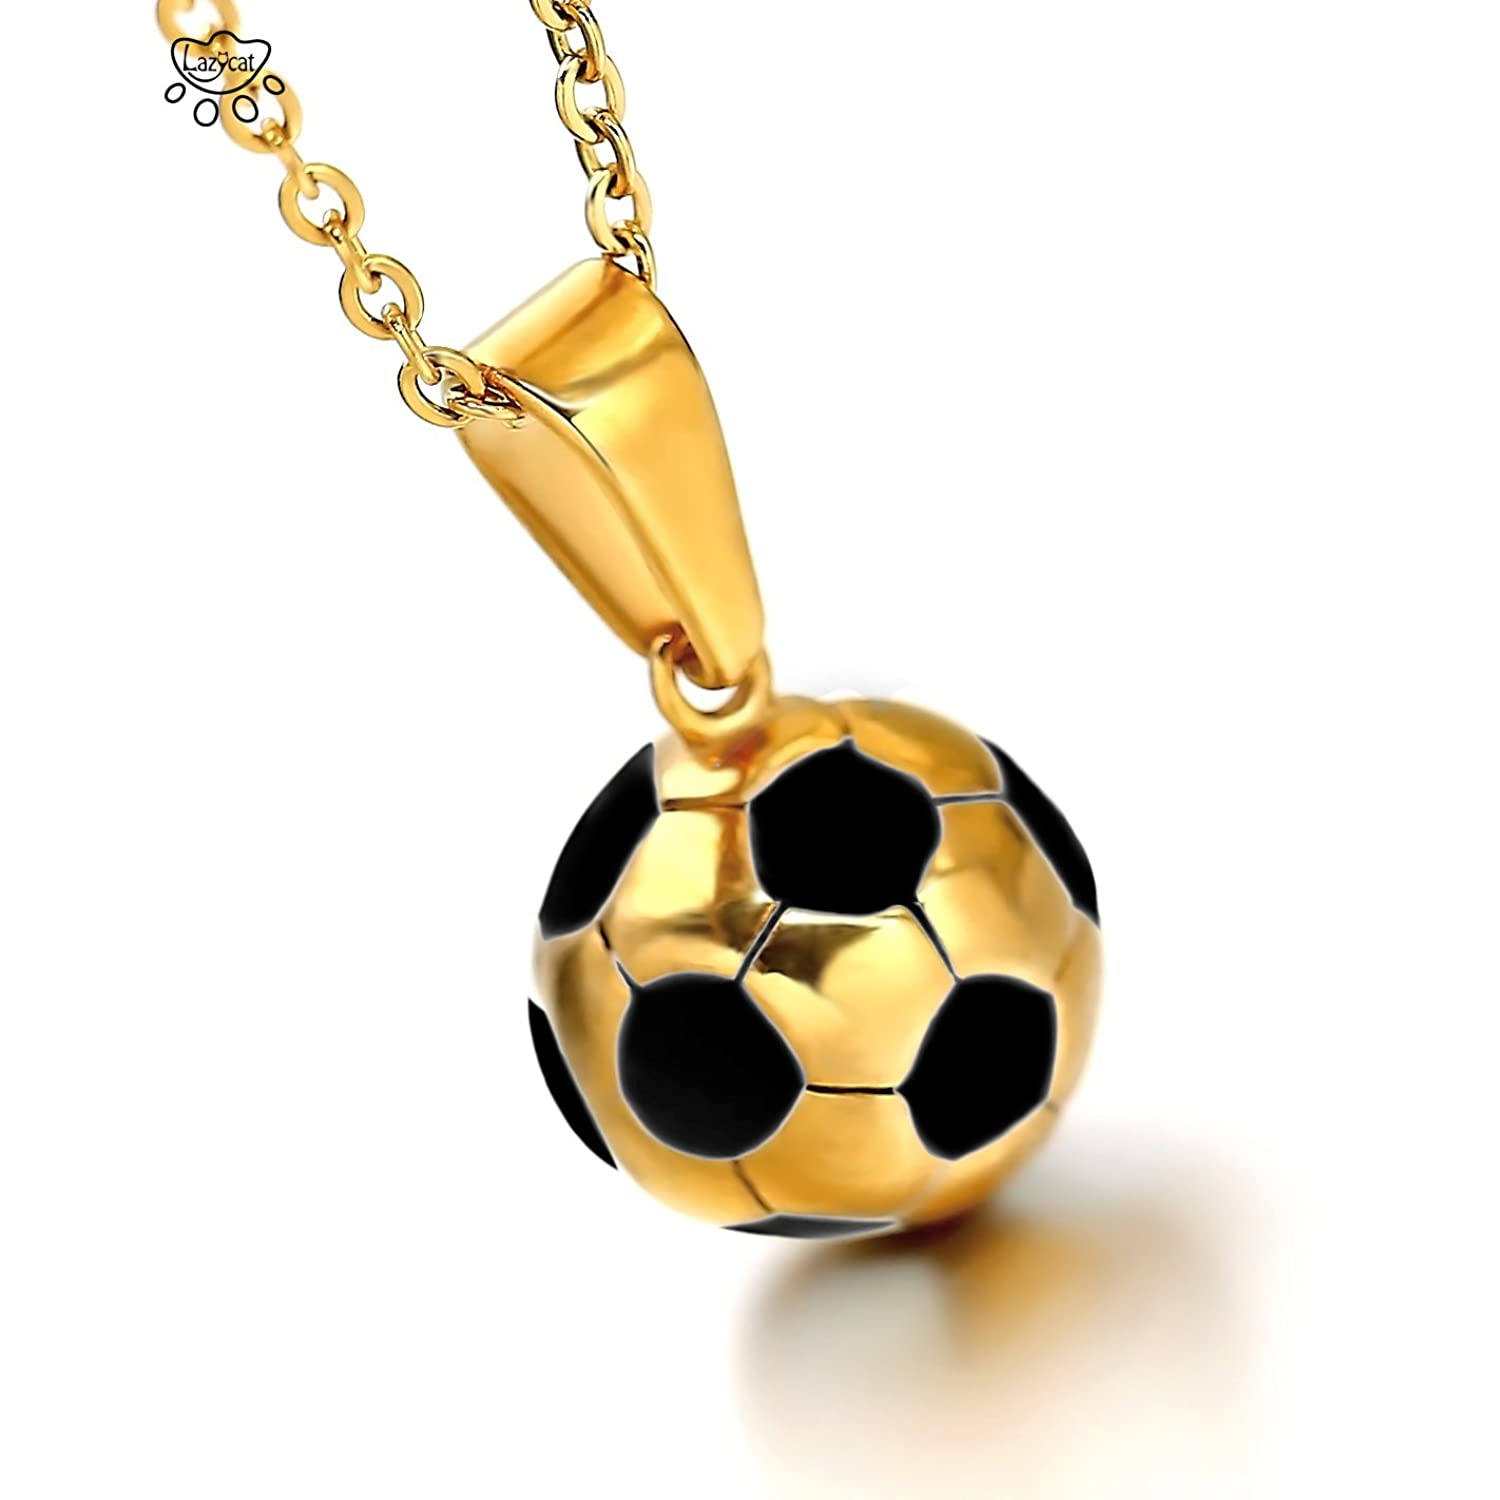 fullxfull medal squad necklace fifa il world london united uk the soccer cup nxkz coin products english france england kingdom lions football pendant